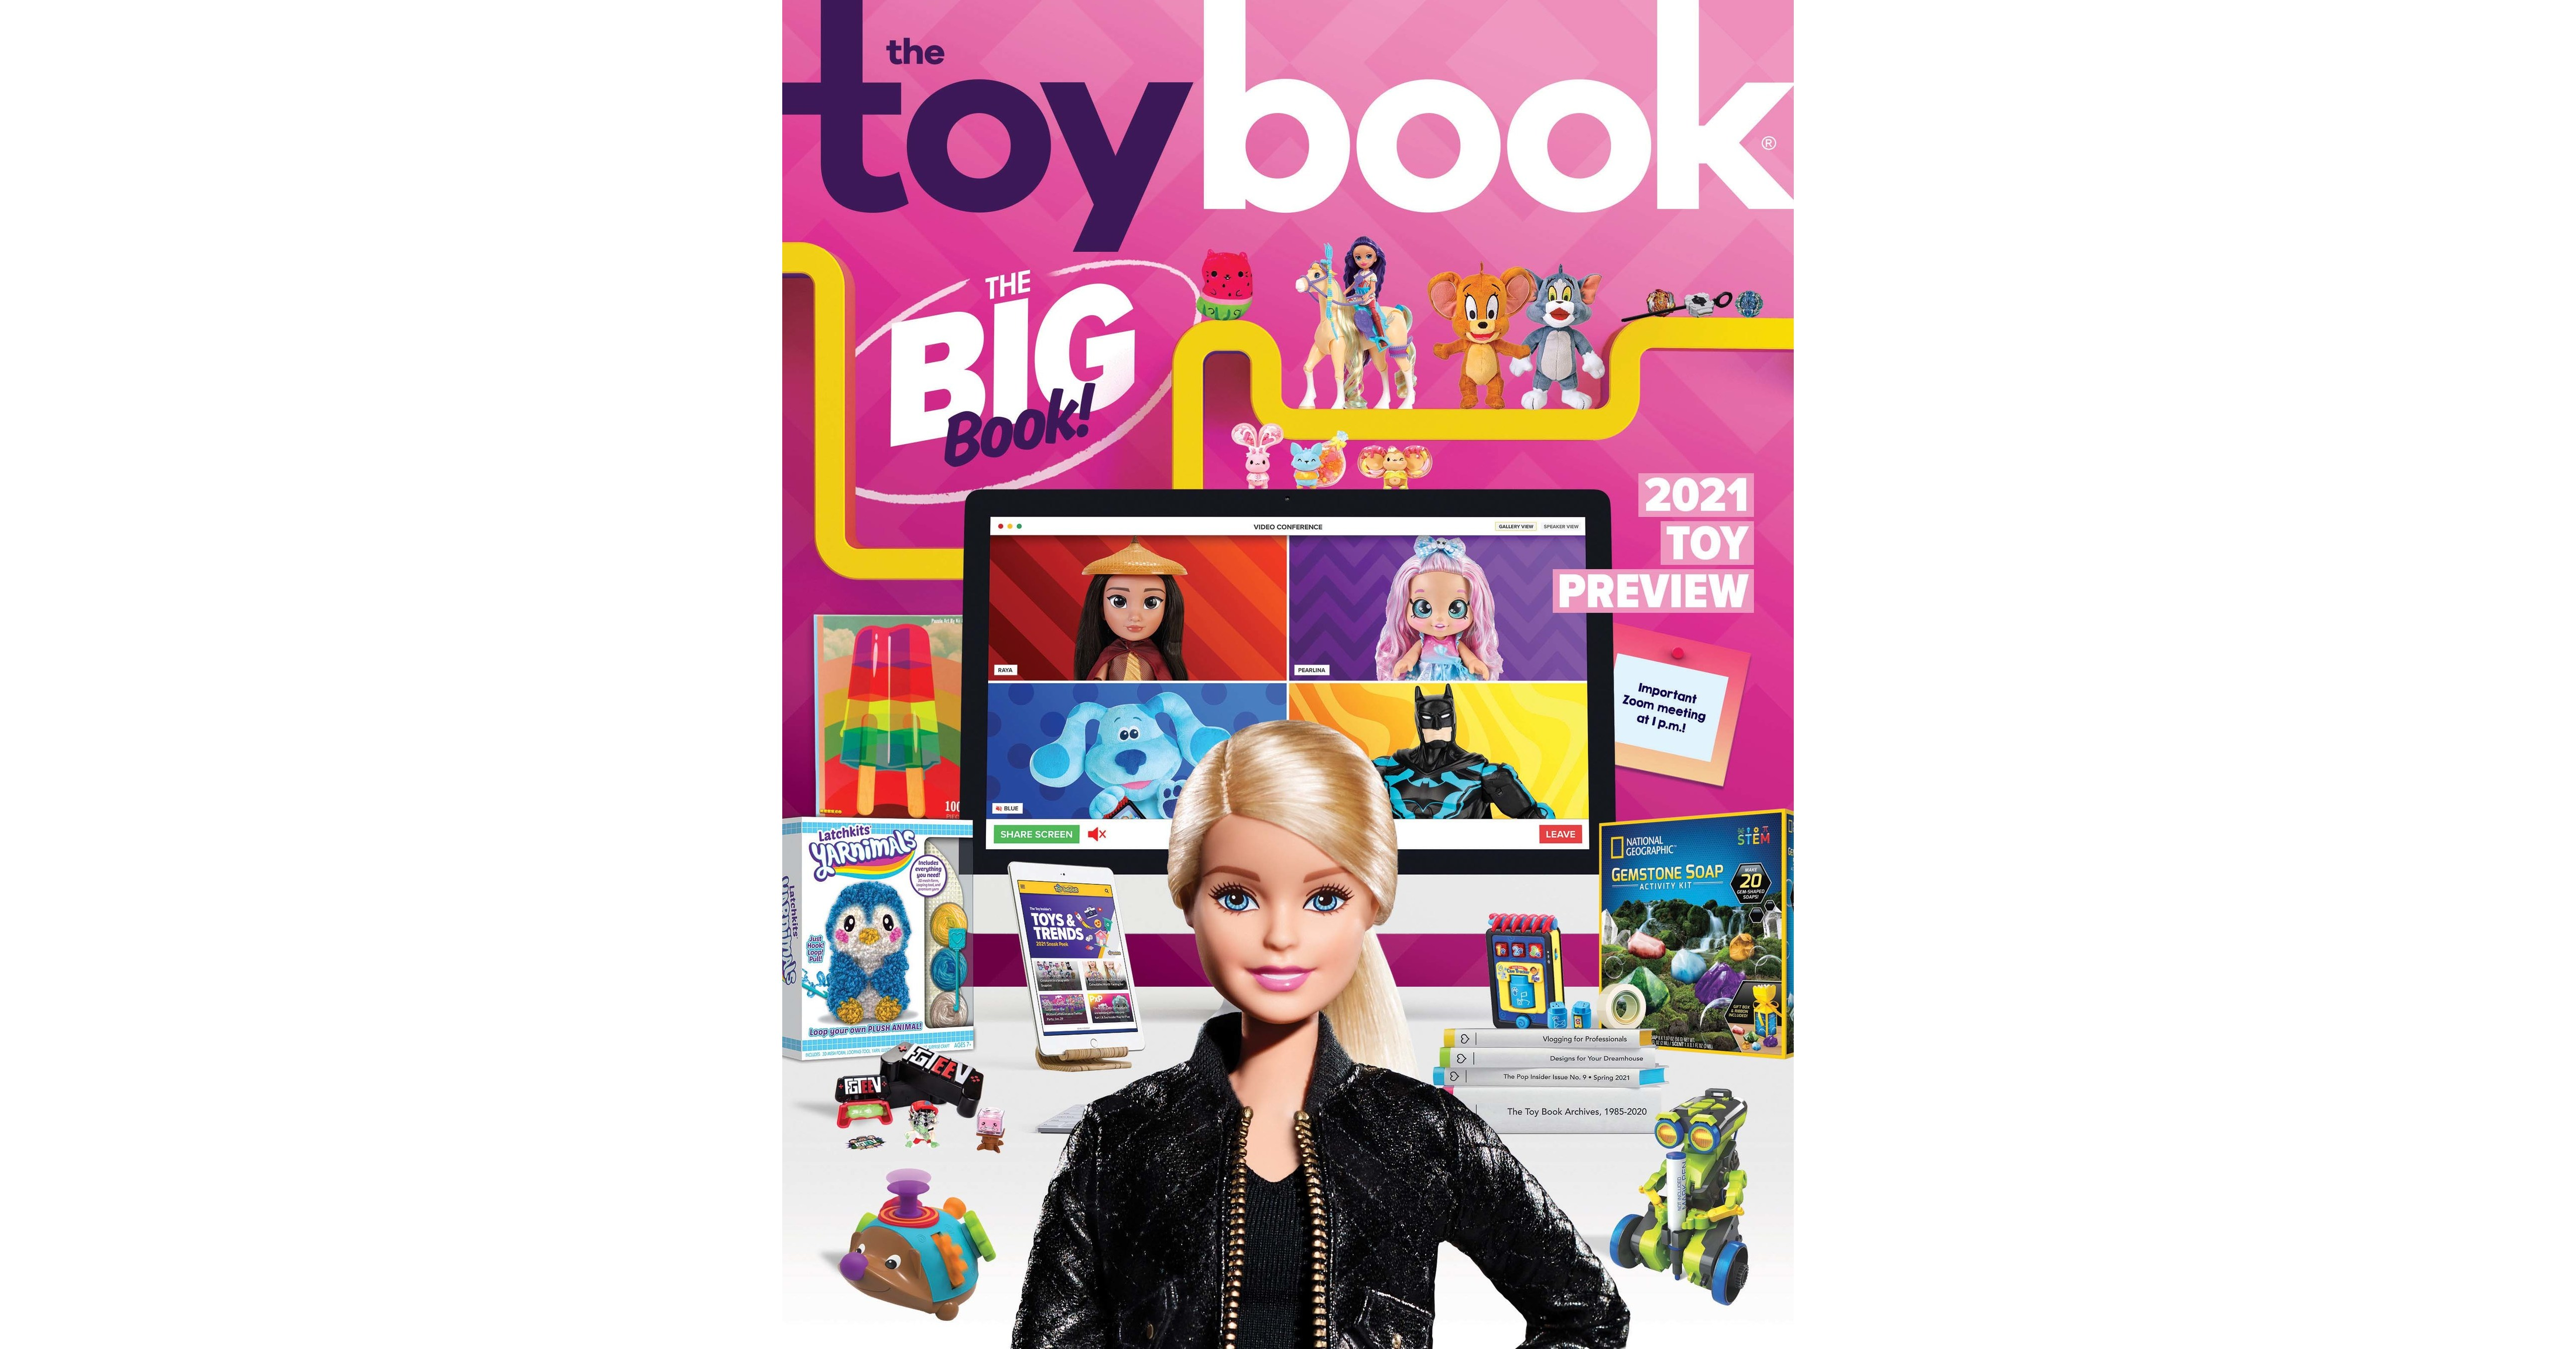 Christmas Toy Book 2021 The Toy Book Releases Its 37th Annual Big Book